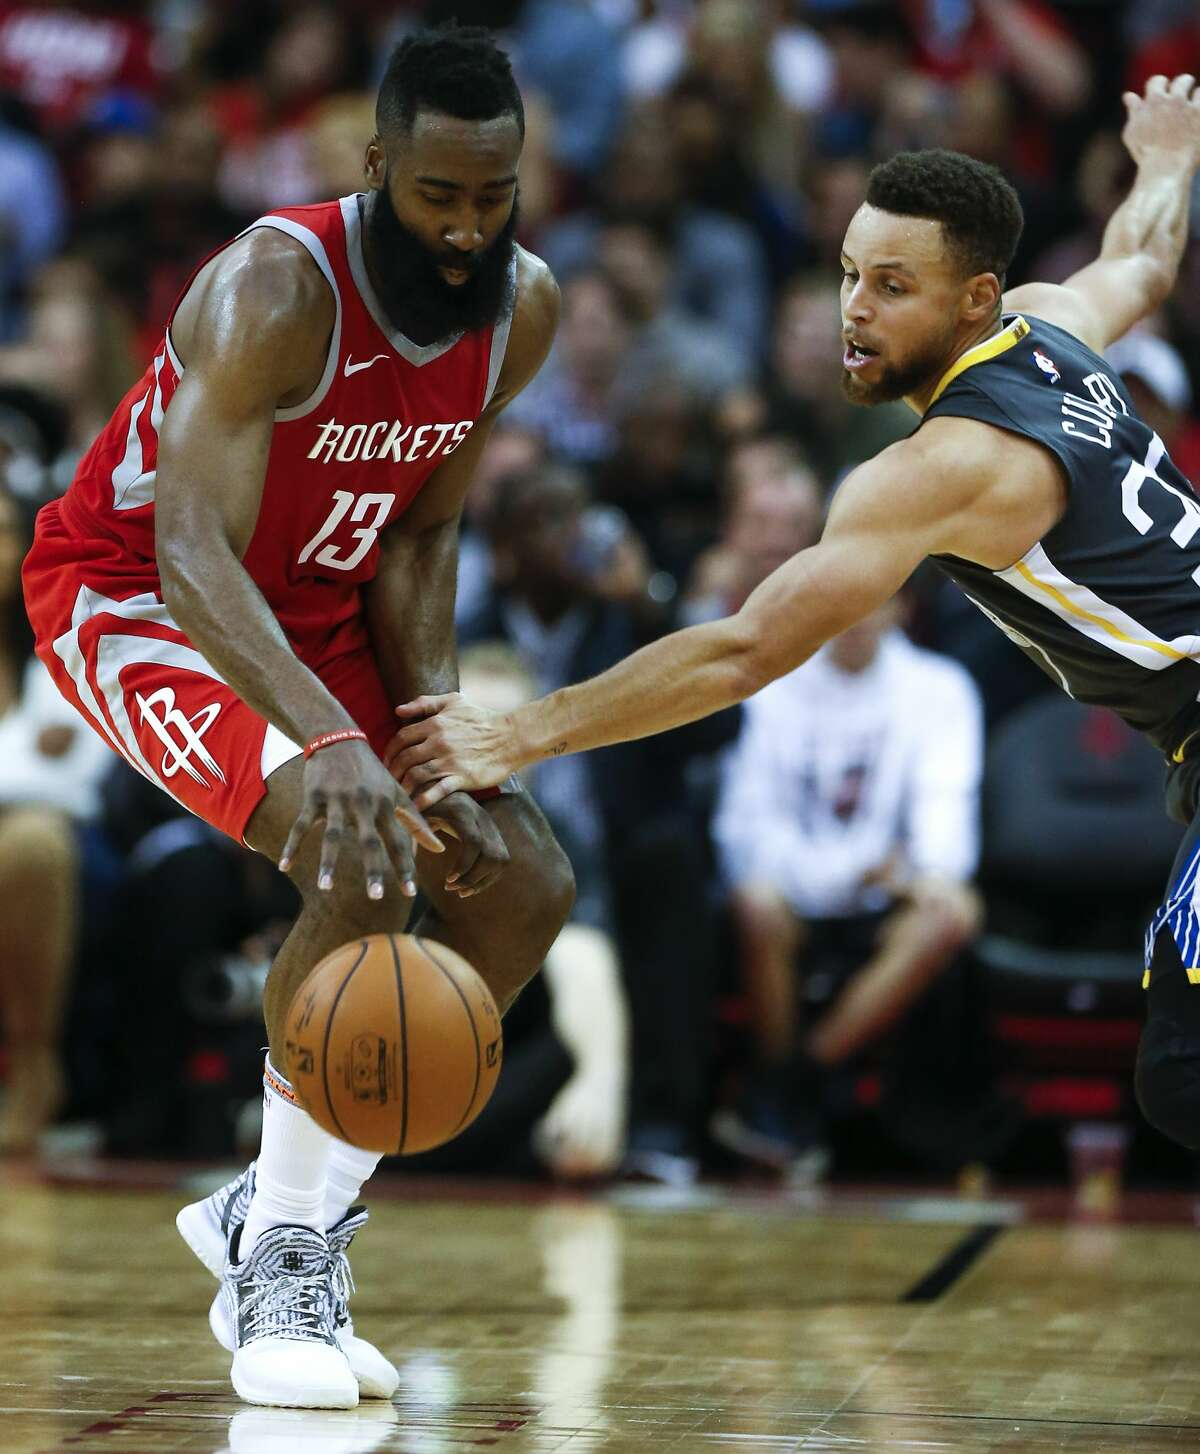 Golden State Warriors guard Stephen Curry (30) grabs Houston Rockets guard James Harden's arm as he tries to go for a steal during the second half of an NBA basketball game at Toyota Center on Saturday, Jan. 20, 2018, in Houston. ( Brett Coomer / Houston Chronicle )